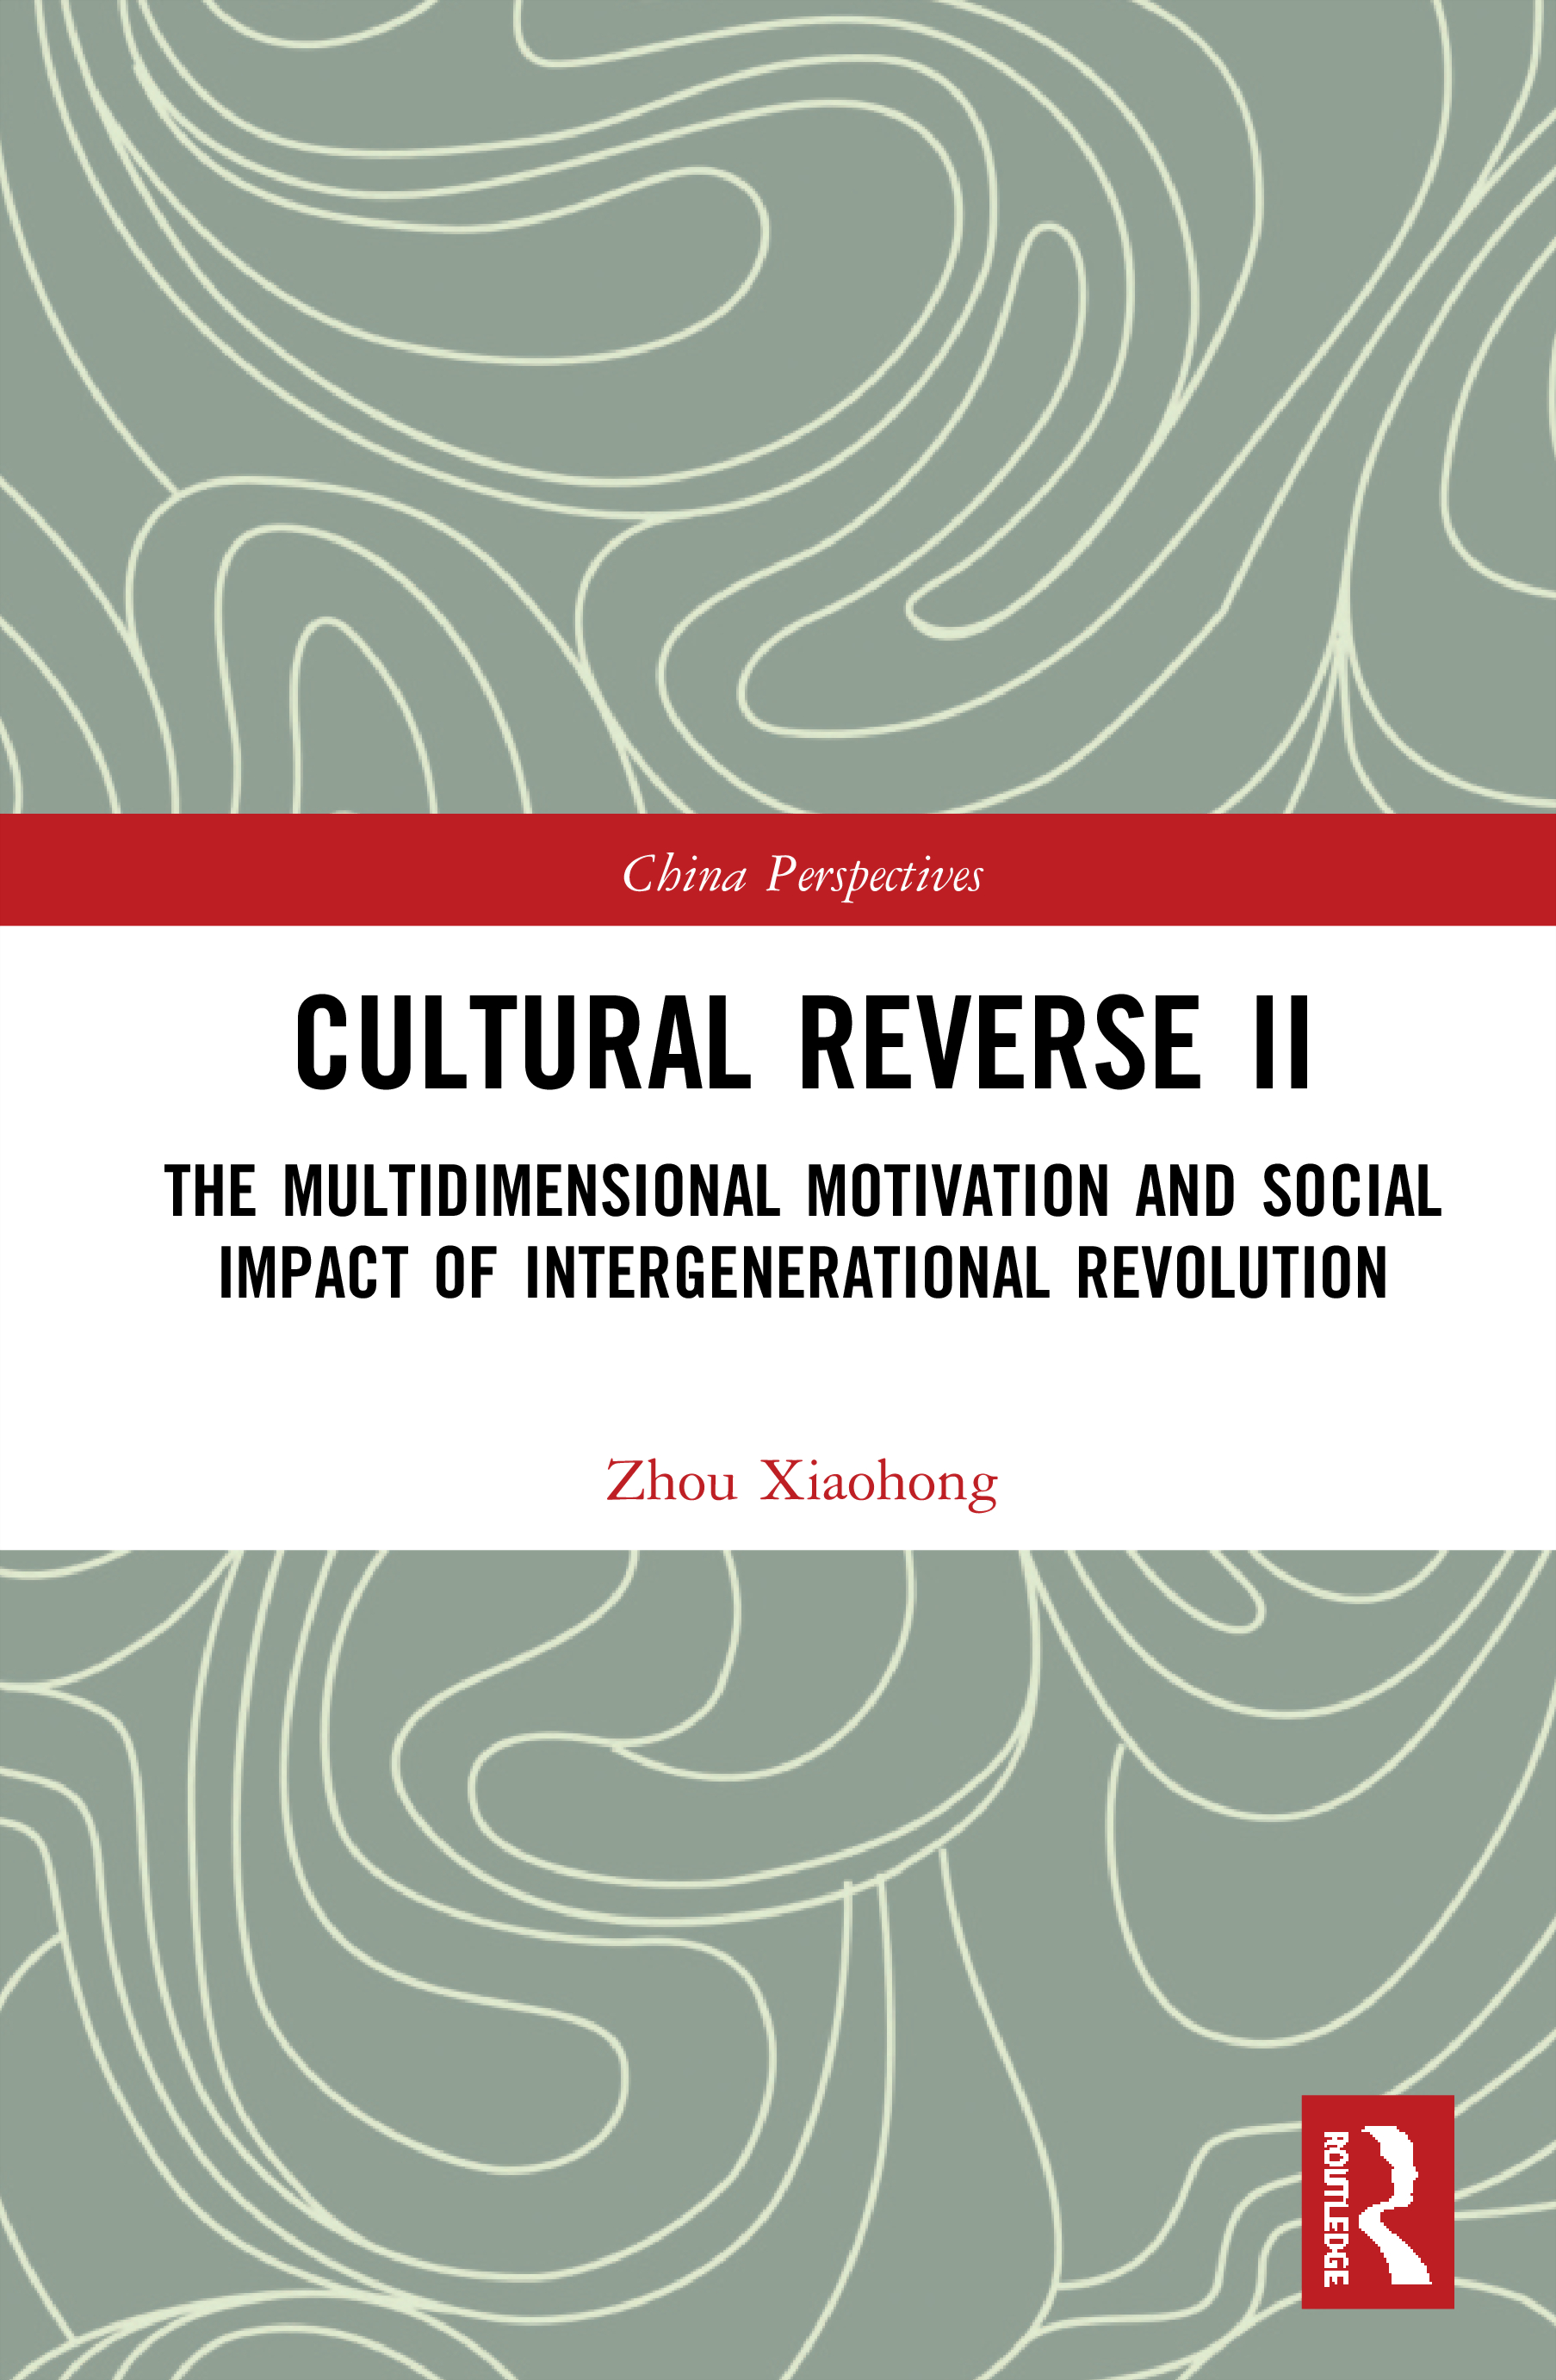 Cultural Reverse Ⅱ: The Multidimensional Motivation and Social Impact of Intergenerational Revolution book cover